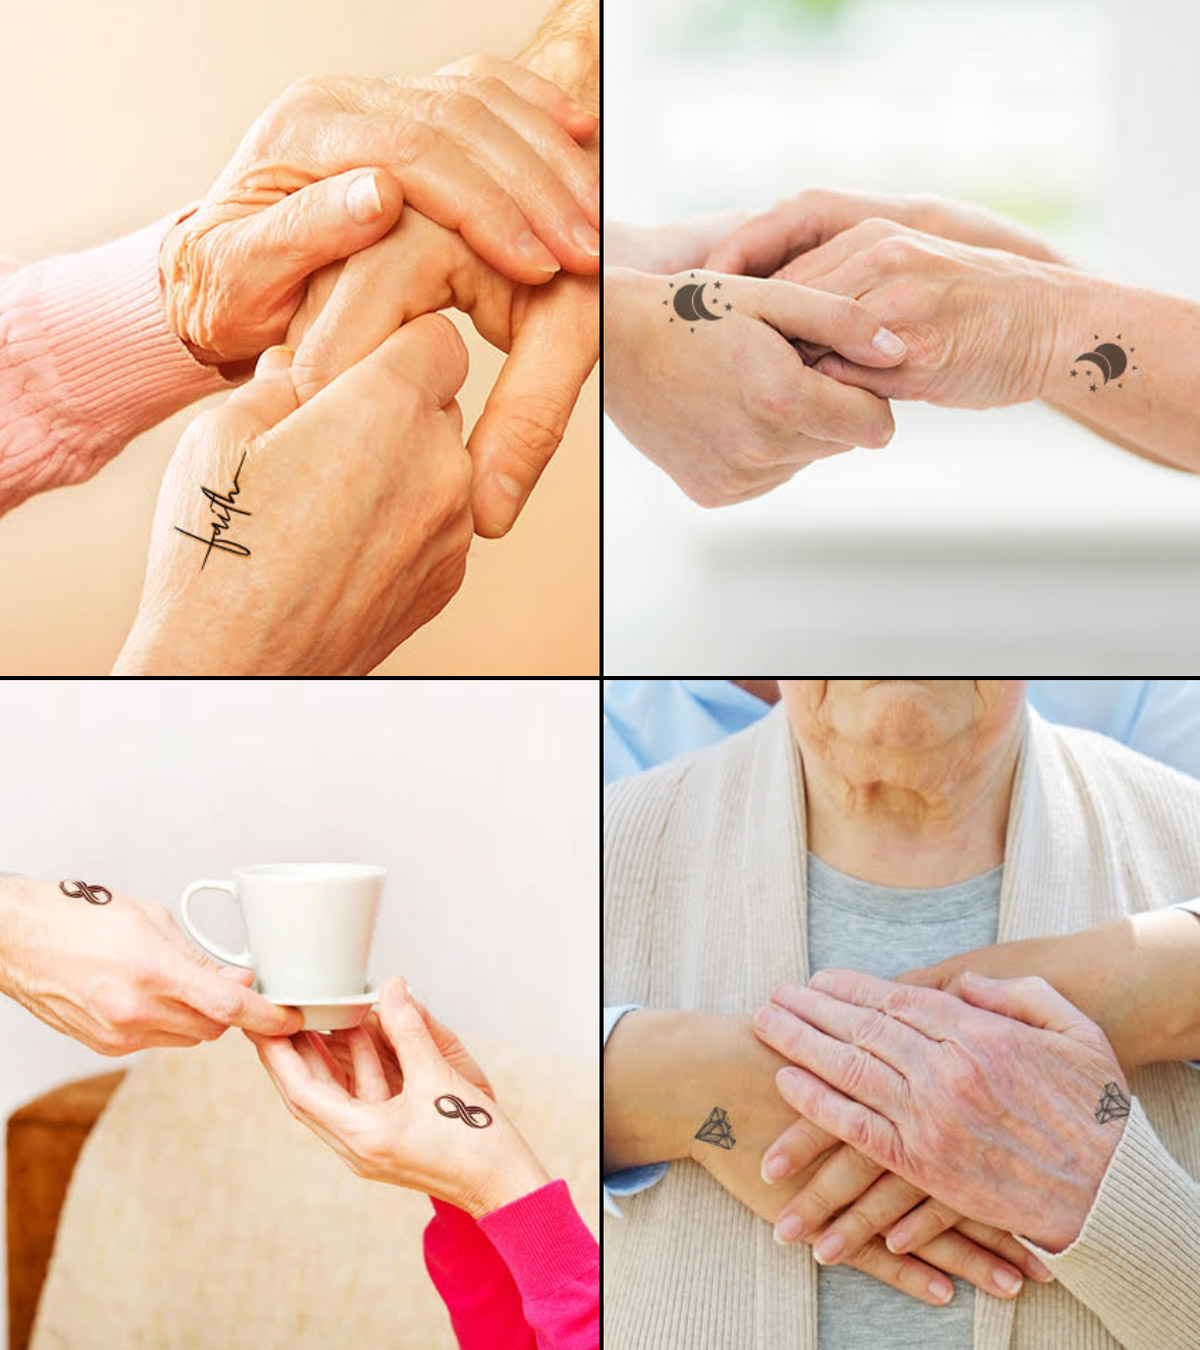 35 Matching Tattoo Ideas For Mother And Son